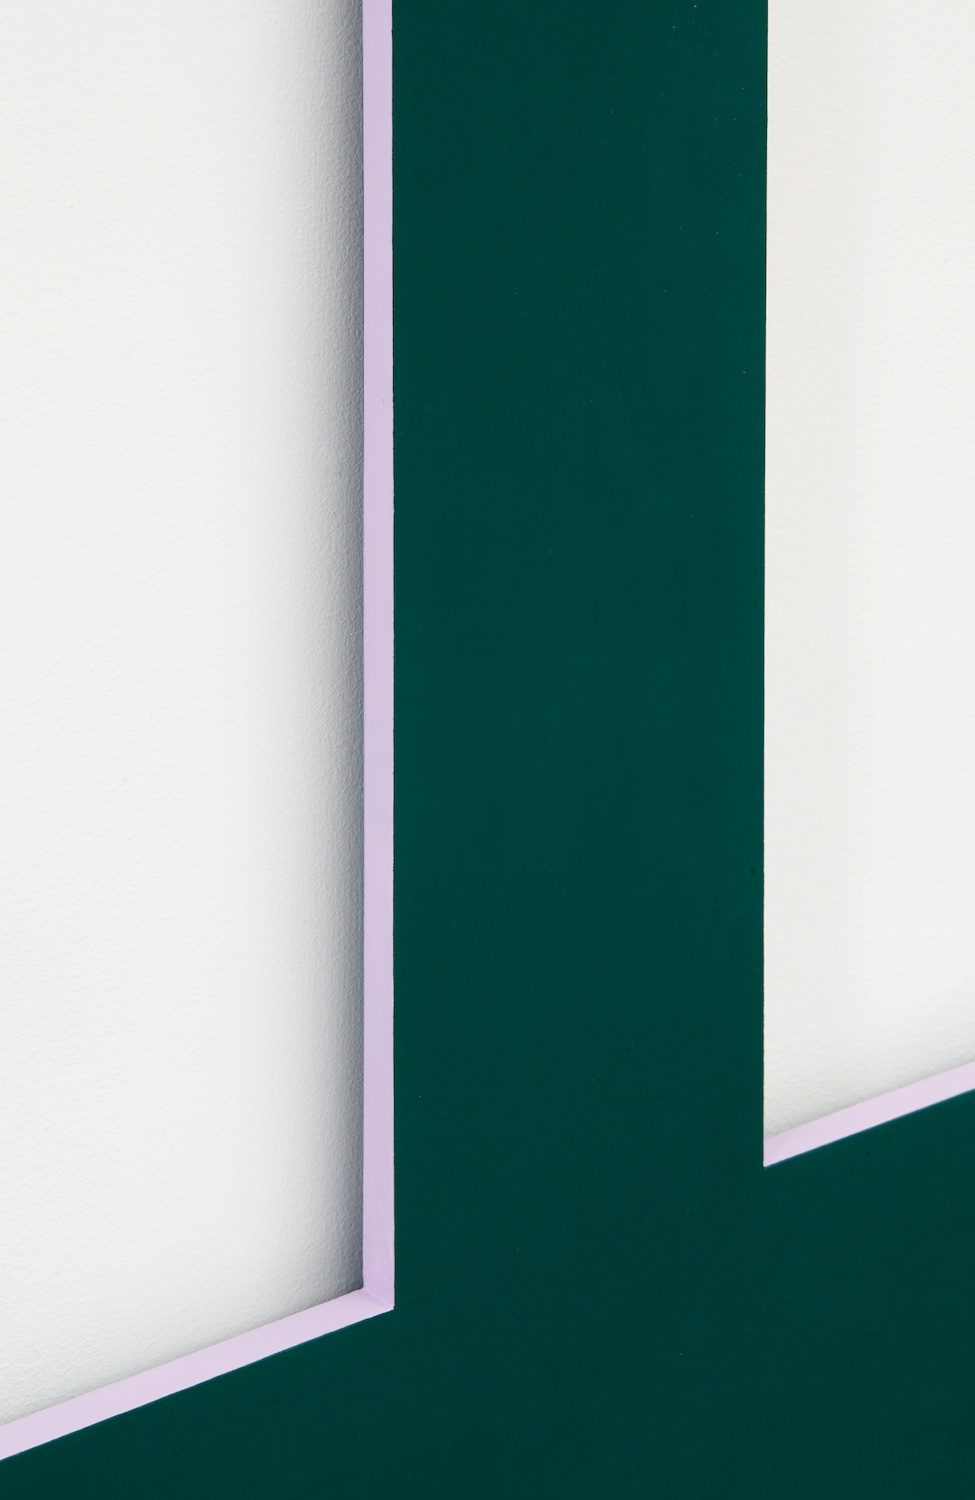 Lisa Williamson  Bookend  (Detail) 2014 Acrylic on aluminum 84h x 30w x 1d in LW145